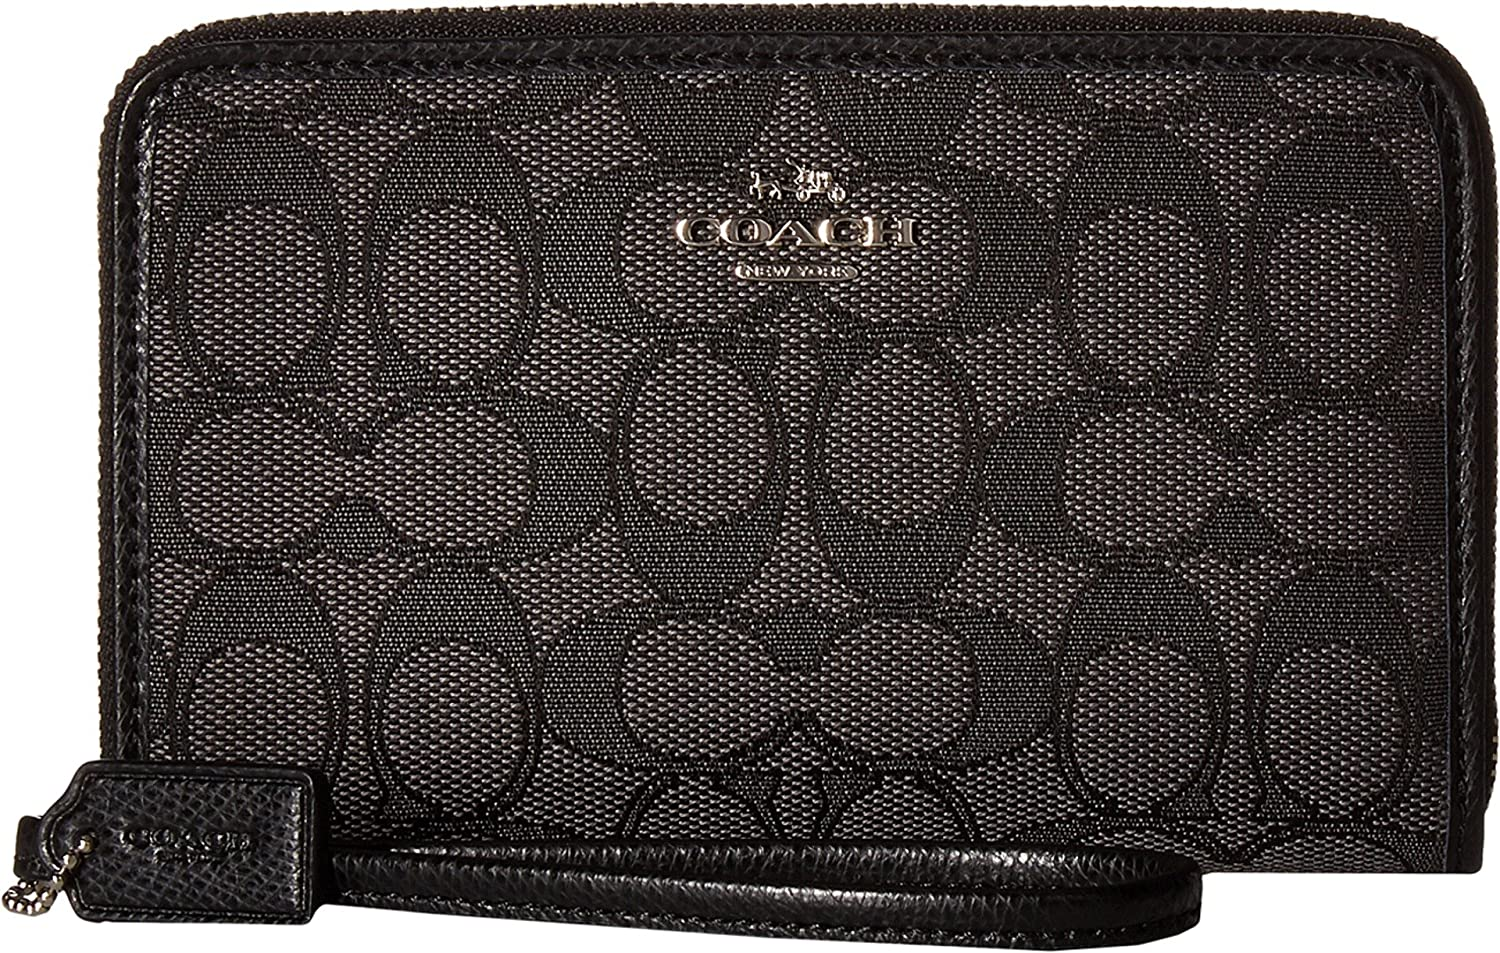 COACH Women's Box Program Signature Zip Organizer